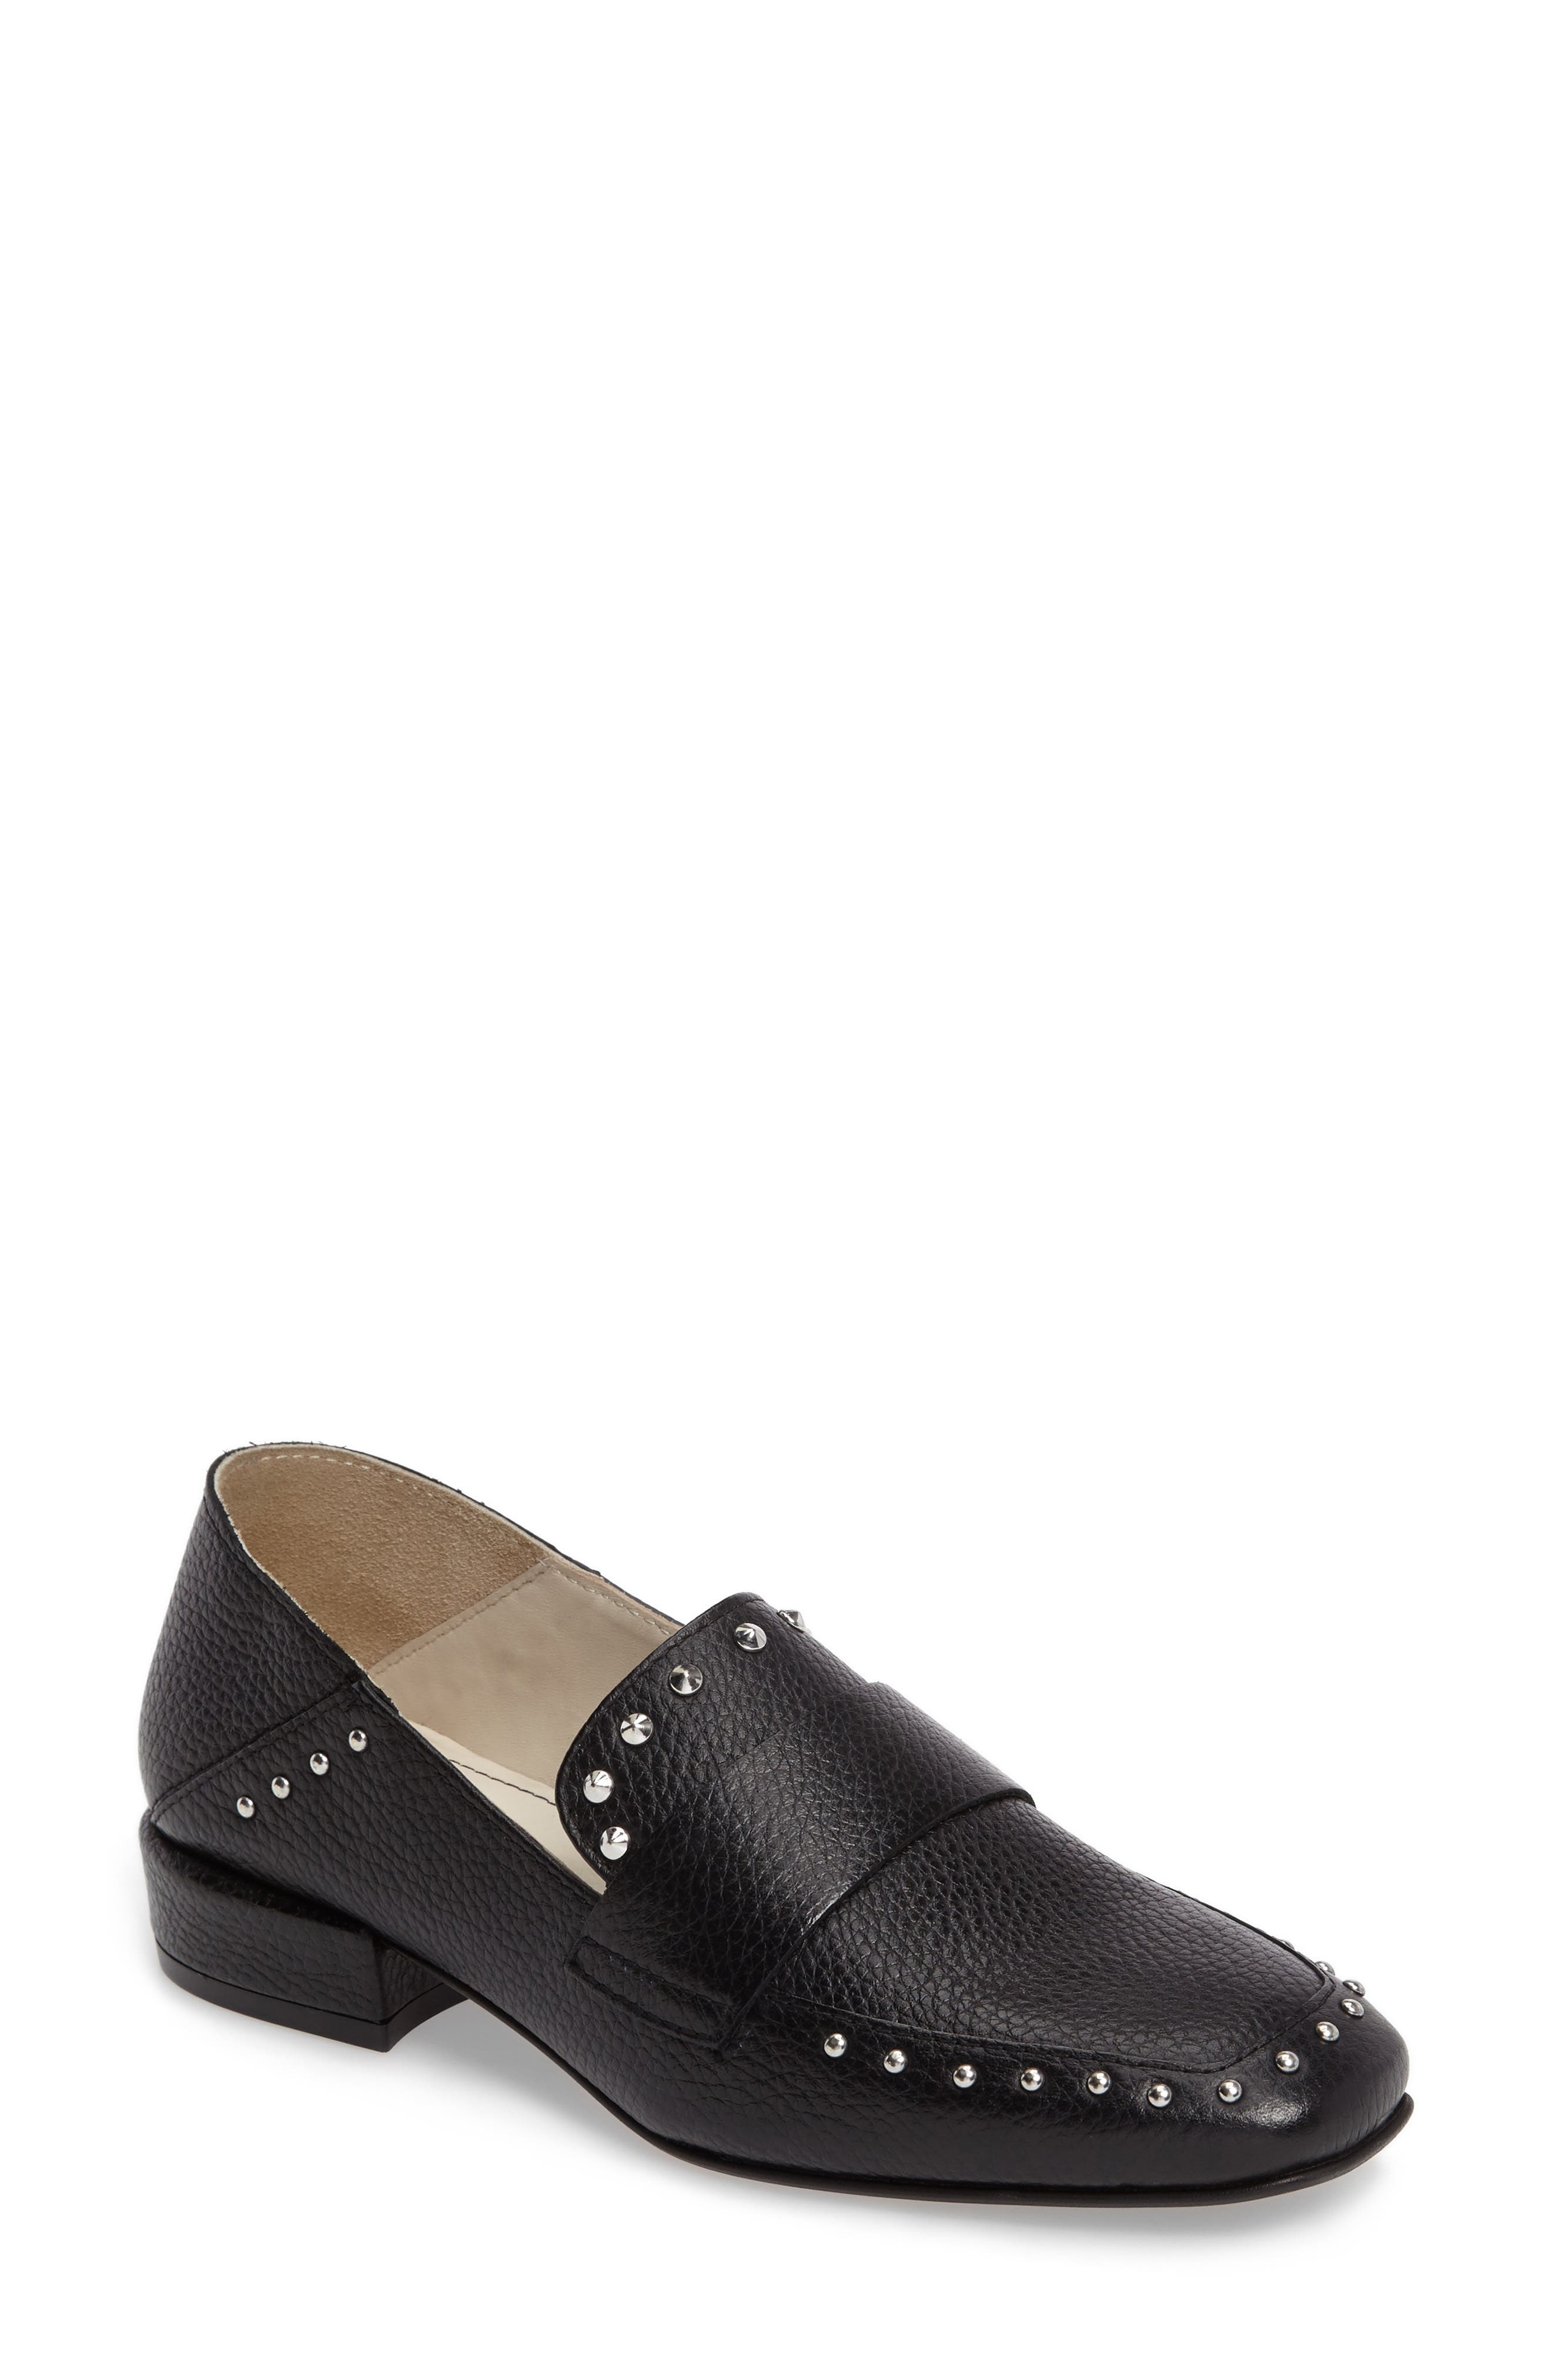 Main Image - Kenneth Cole New York Bowan 2 Convertible Drop Heel Loafer (Women)